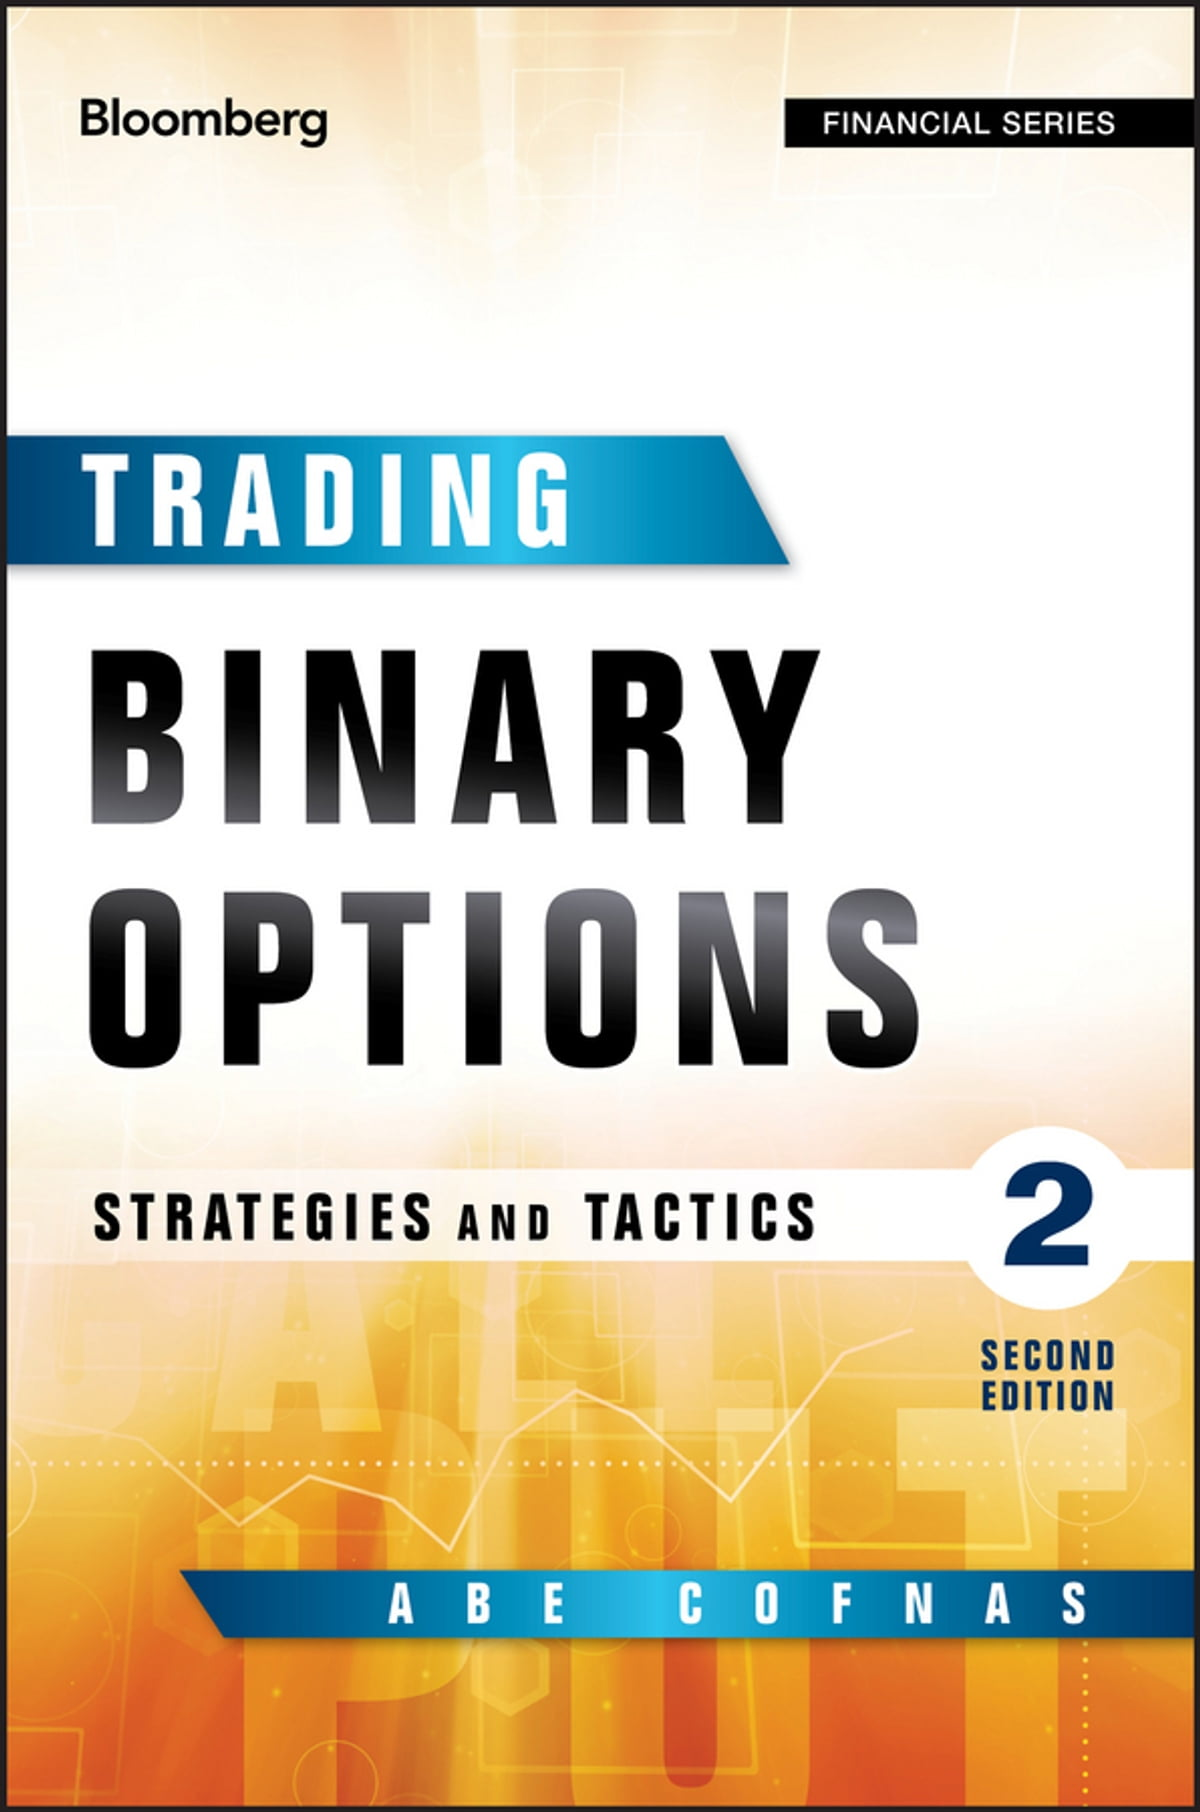 Trading binary options strategies and tactics download adobe betboo 101 sports live betting sites